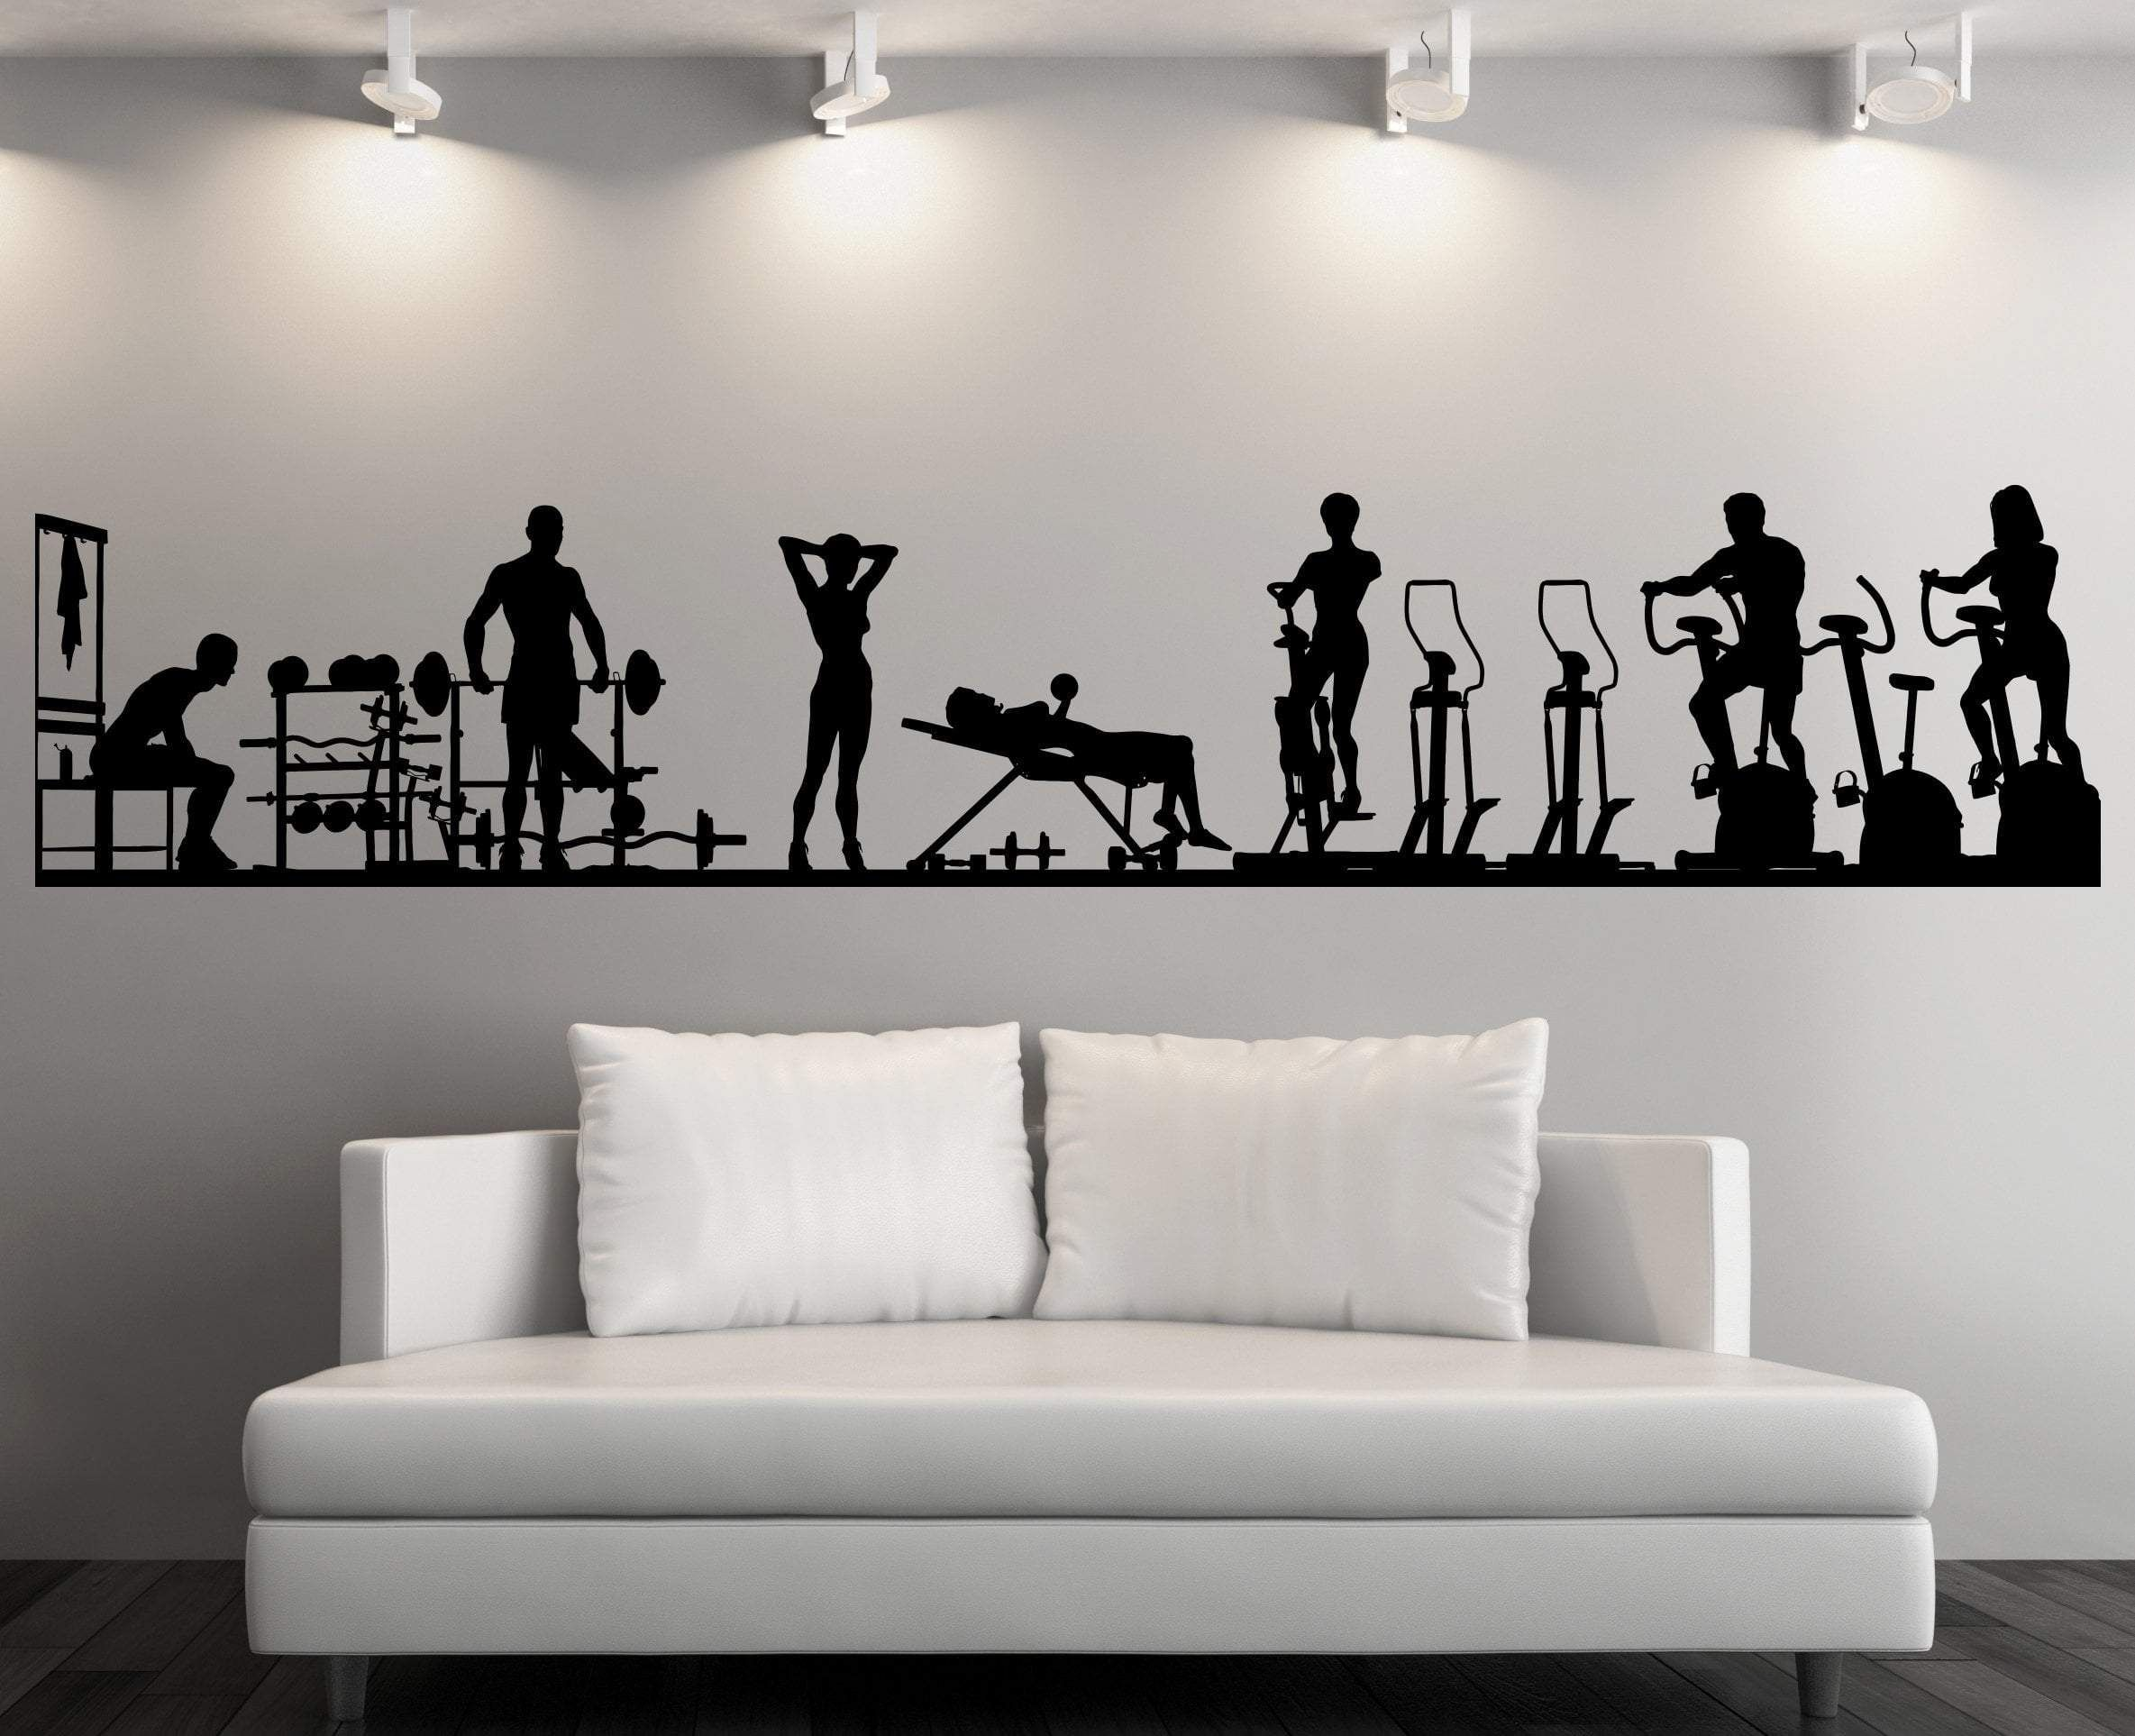 Large Vinyl Decal Wall Sticker Fitness Gym Sport Athletic Interior Decor N839 Gym Wall Decal Vinyl Wall Decals Large Wall Decals [ 1926 x 2369 Pixel ]